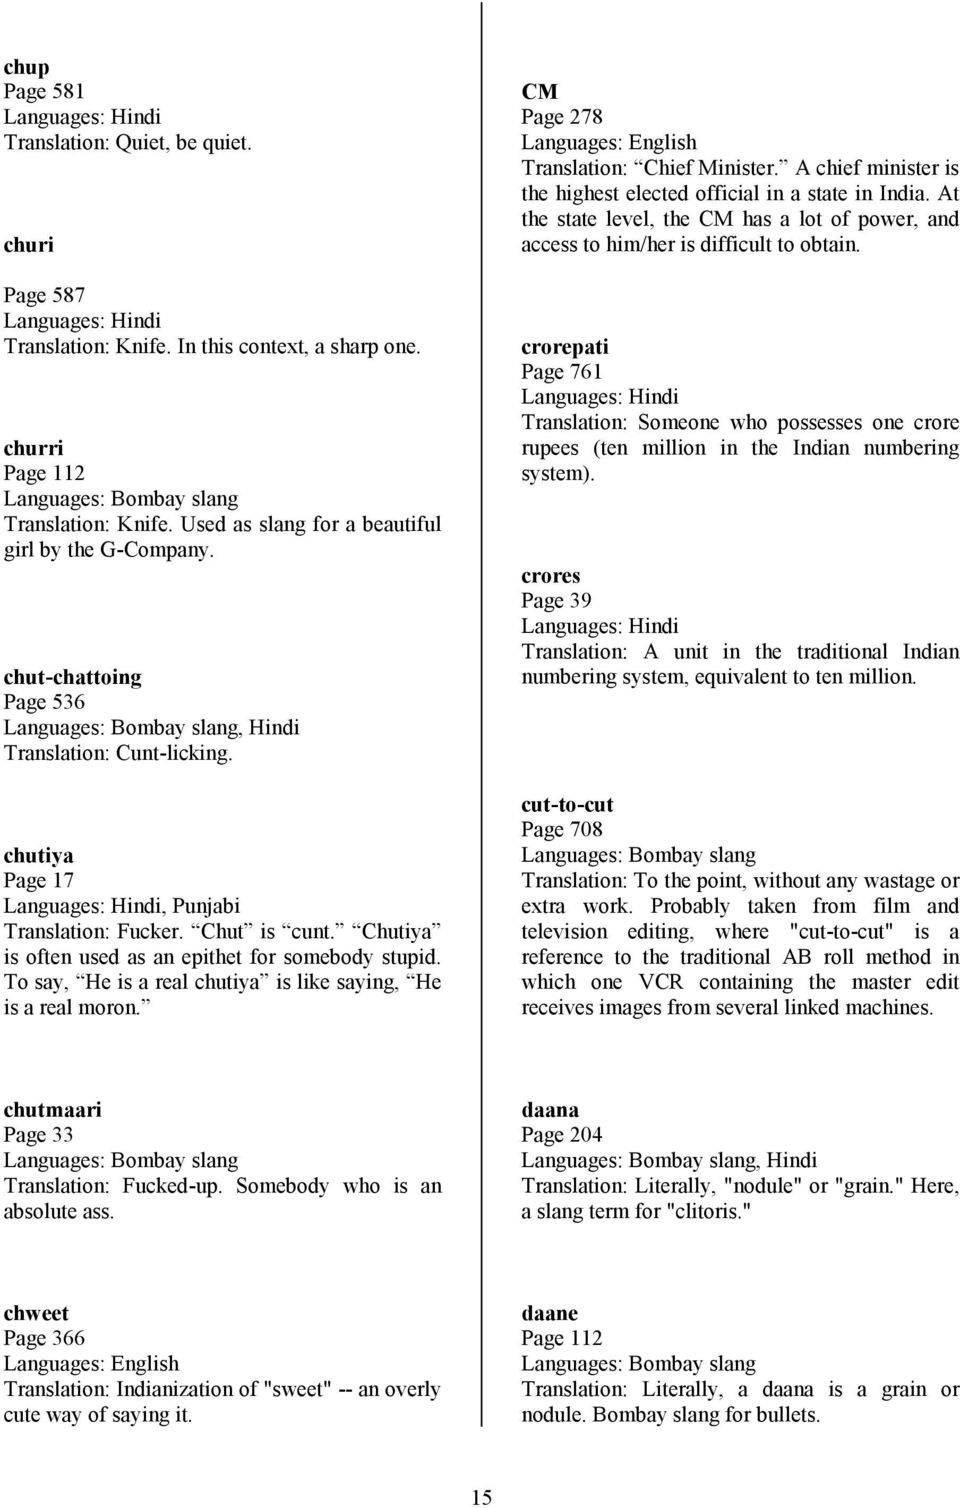 Glossary For Sacred Games Updated July 6 Pdf Free Download